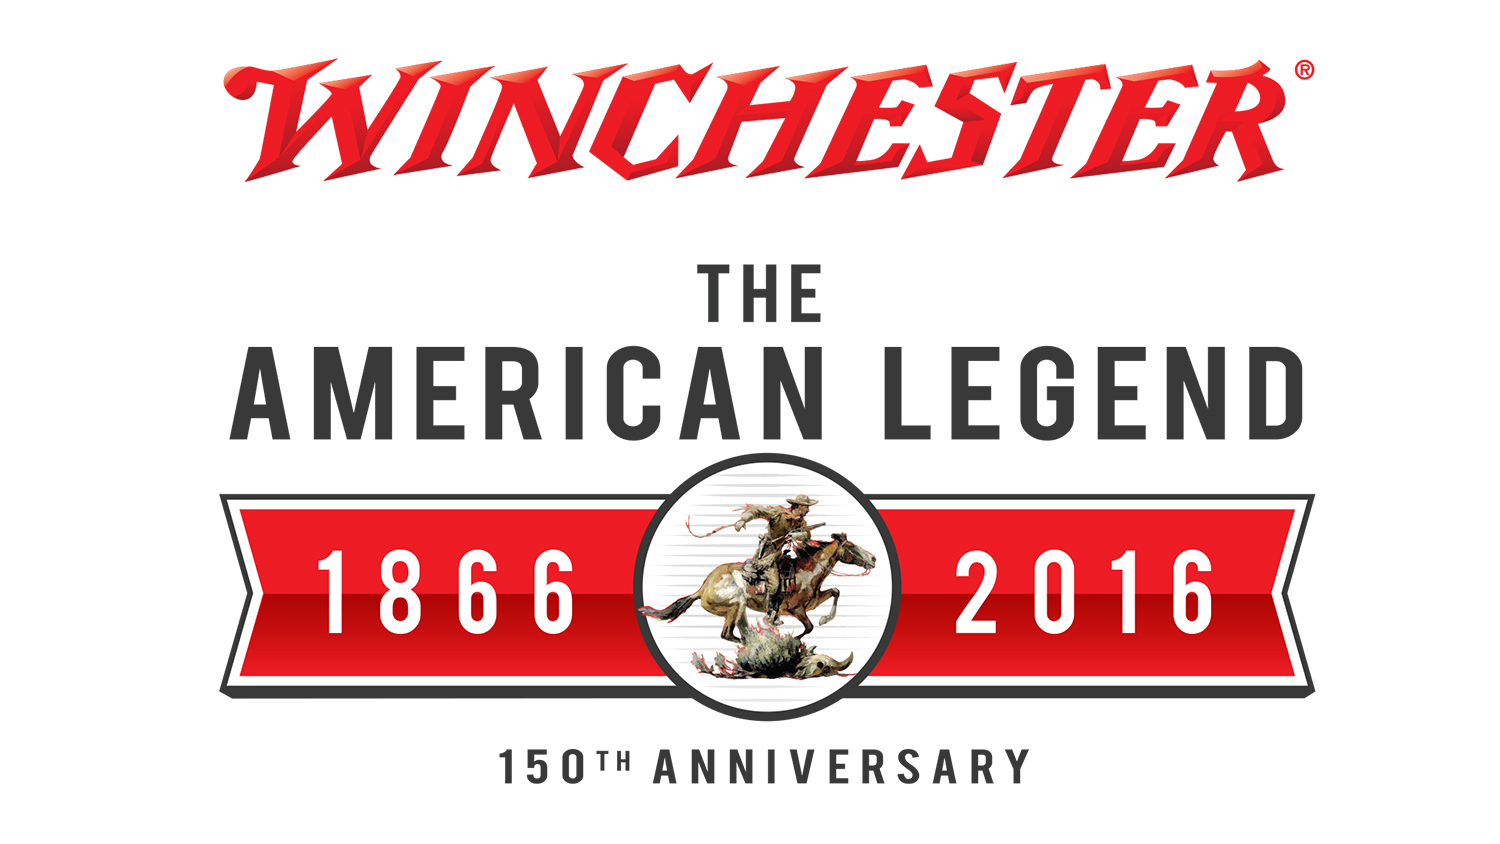 Celebrating Winchester's 150th Anniversary at NRA Annual Meetings